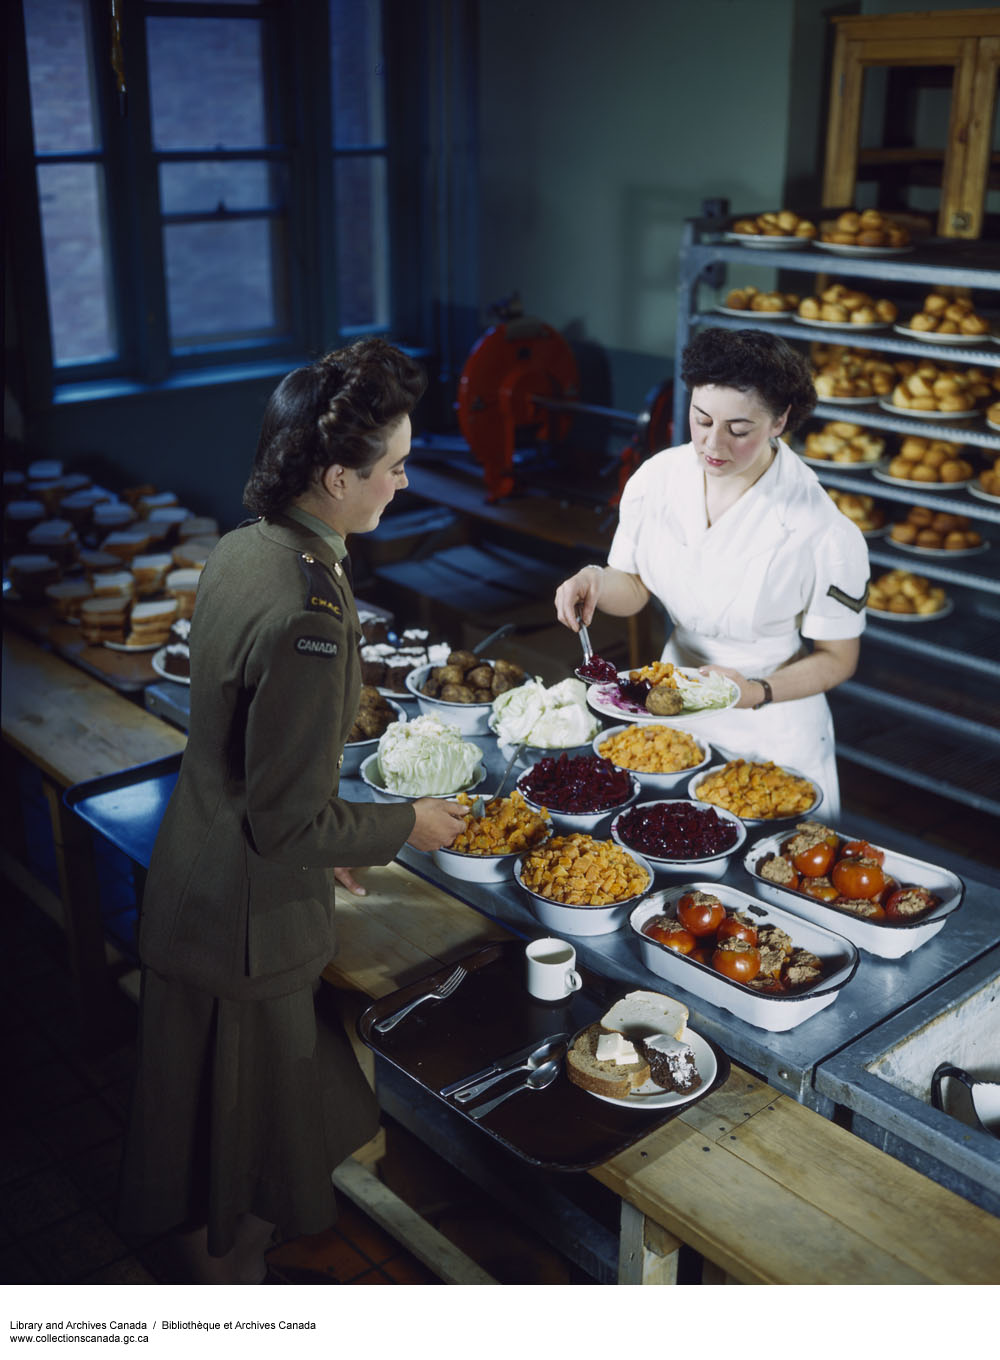 Photo of a CWAC cook serves a meal to her fellow CWAC.